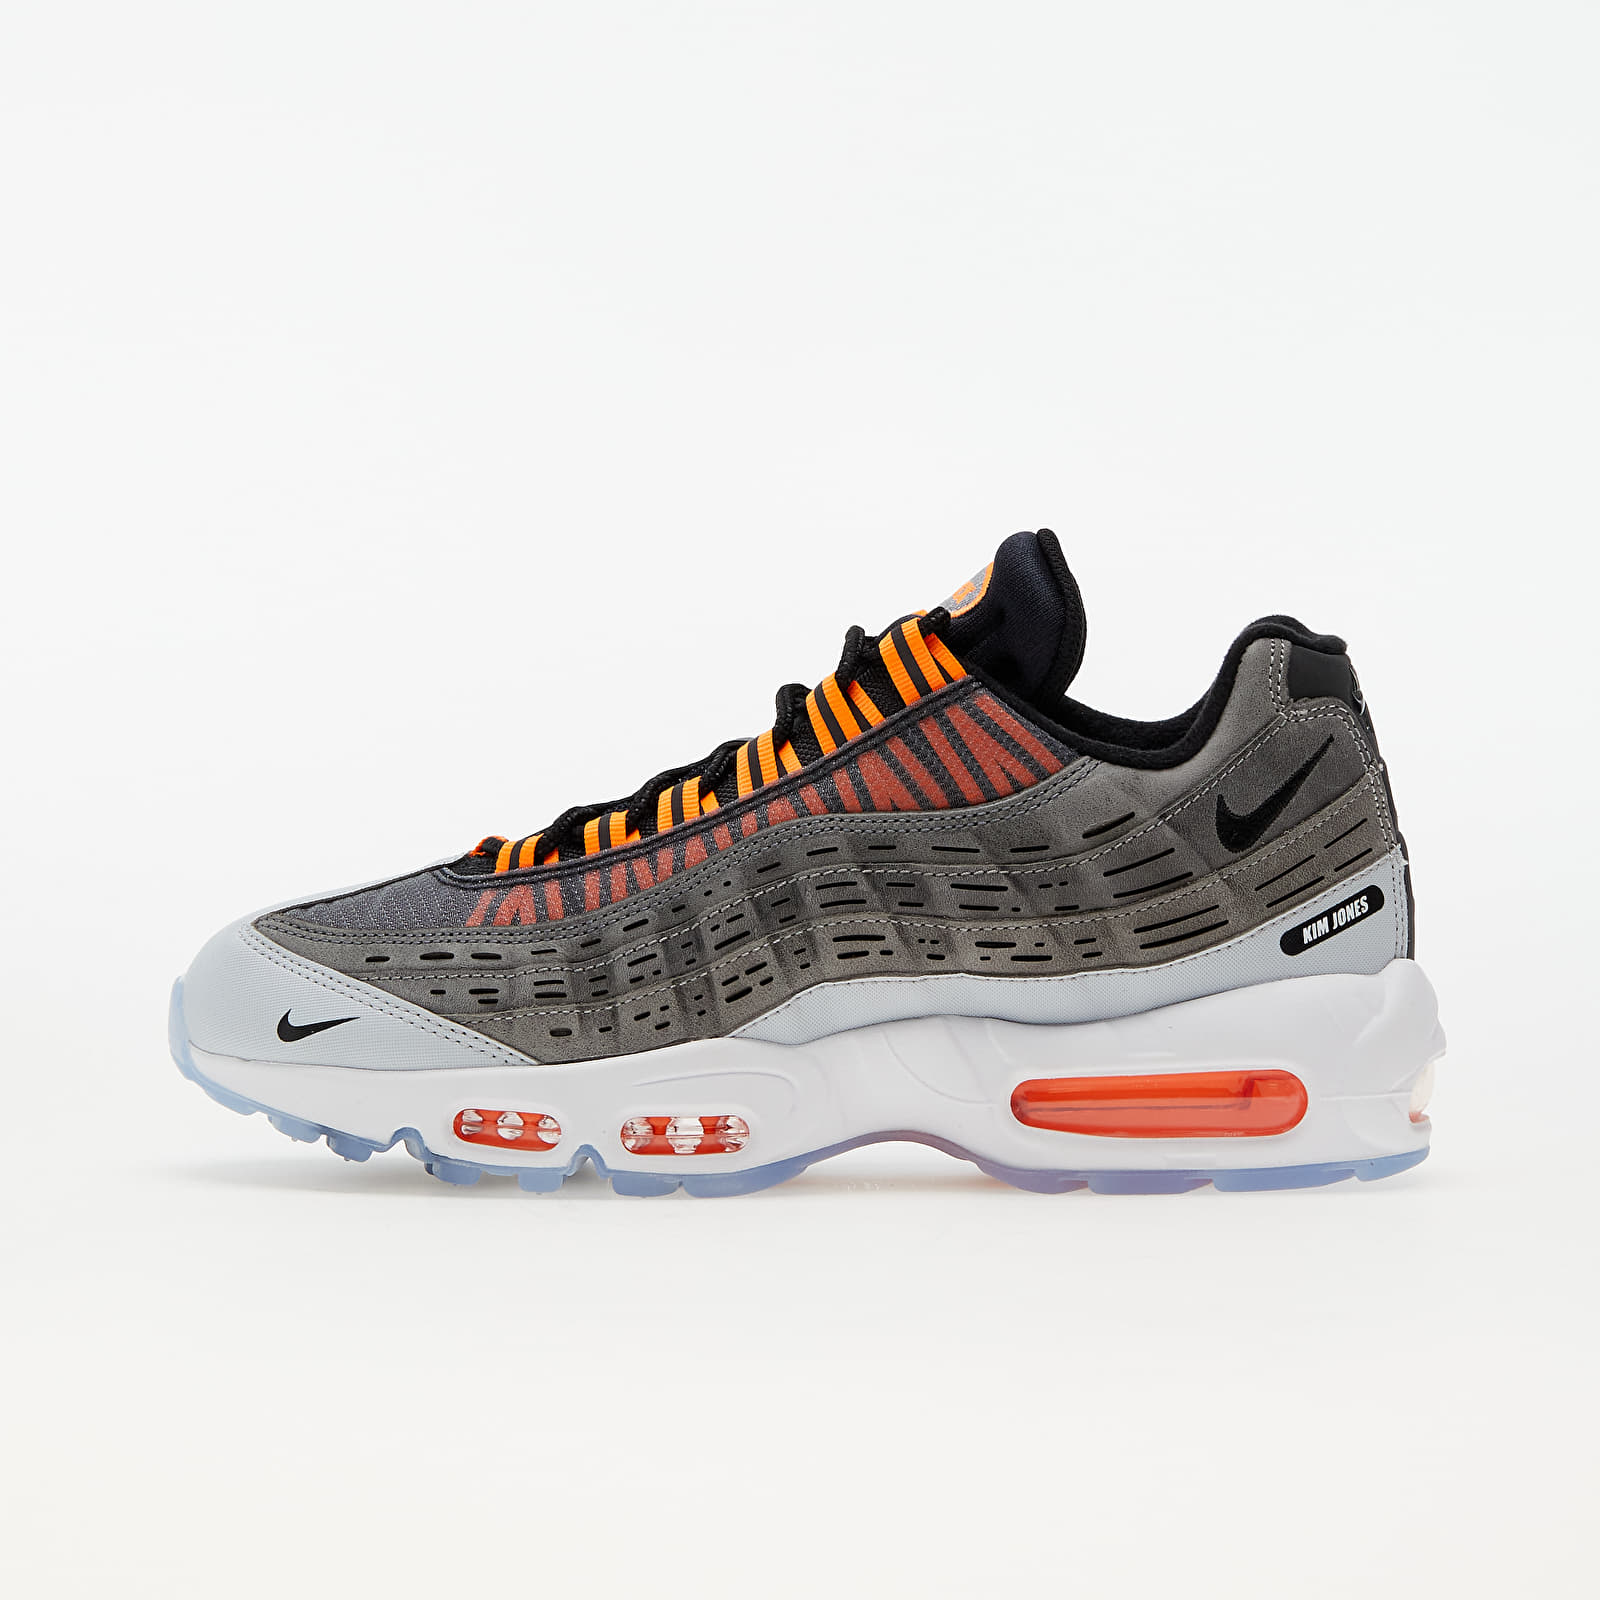 Nike x Kim Jones Air Max 95 Black/ Total Orange-Dark Grey-Cool Grey EUR 45.5